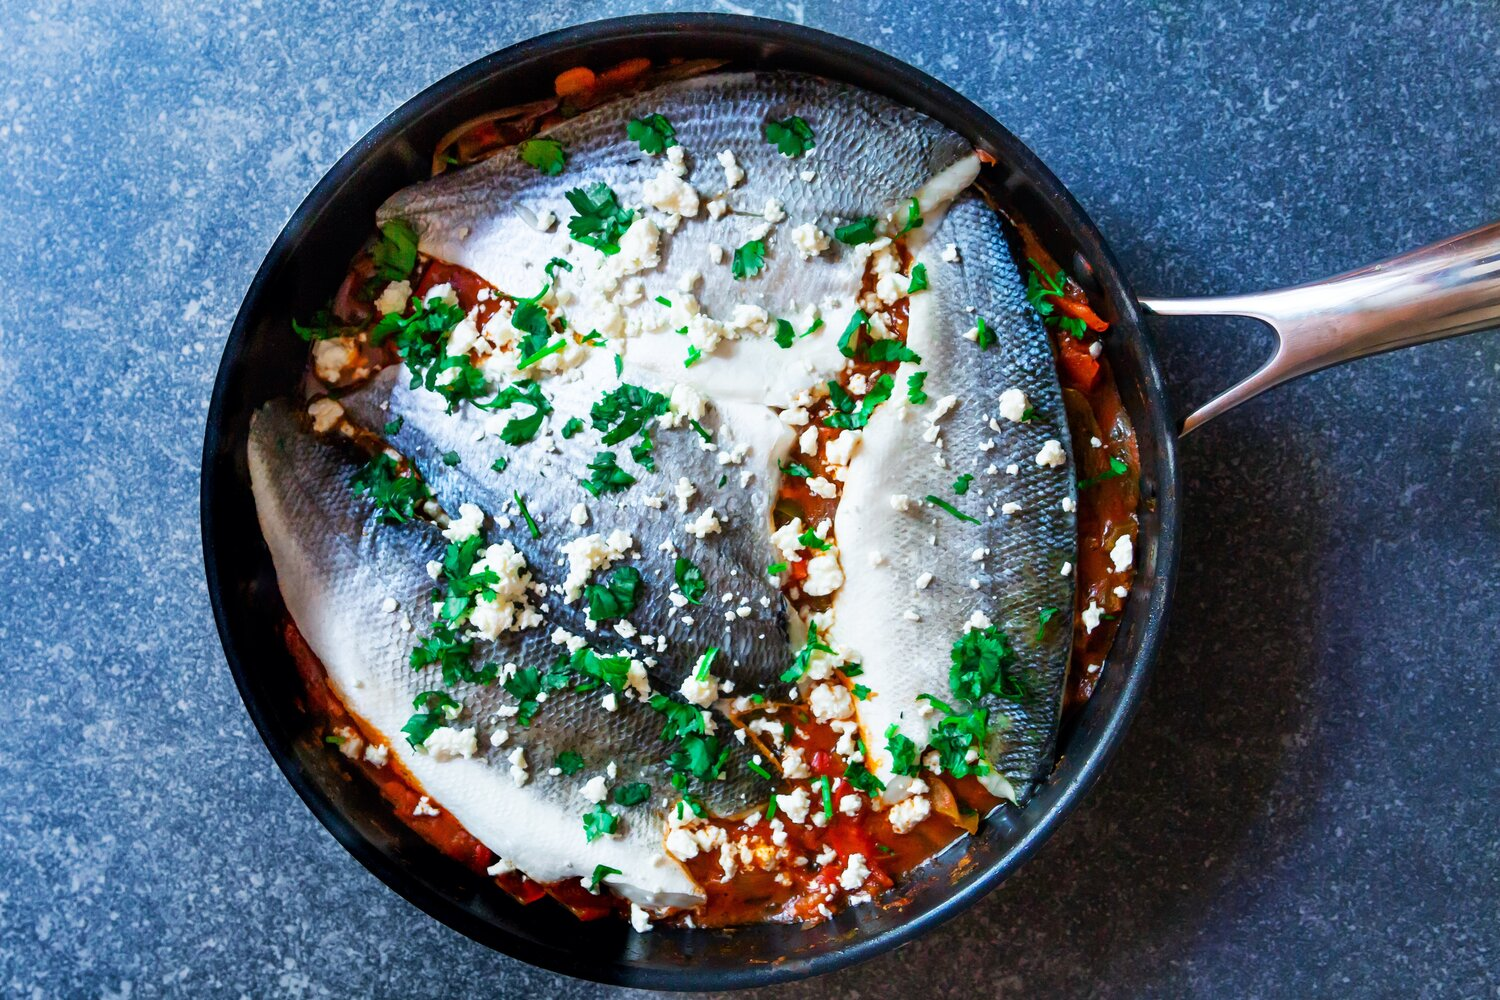 Moroccan spiced fish fillets and bell peppers in tomato sauce